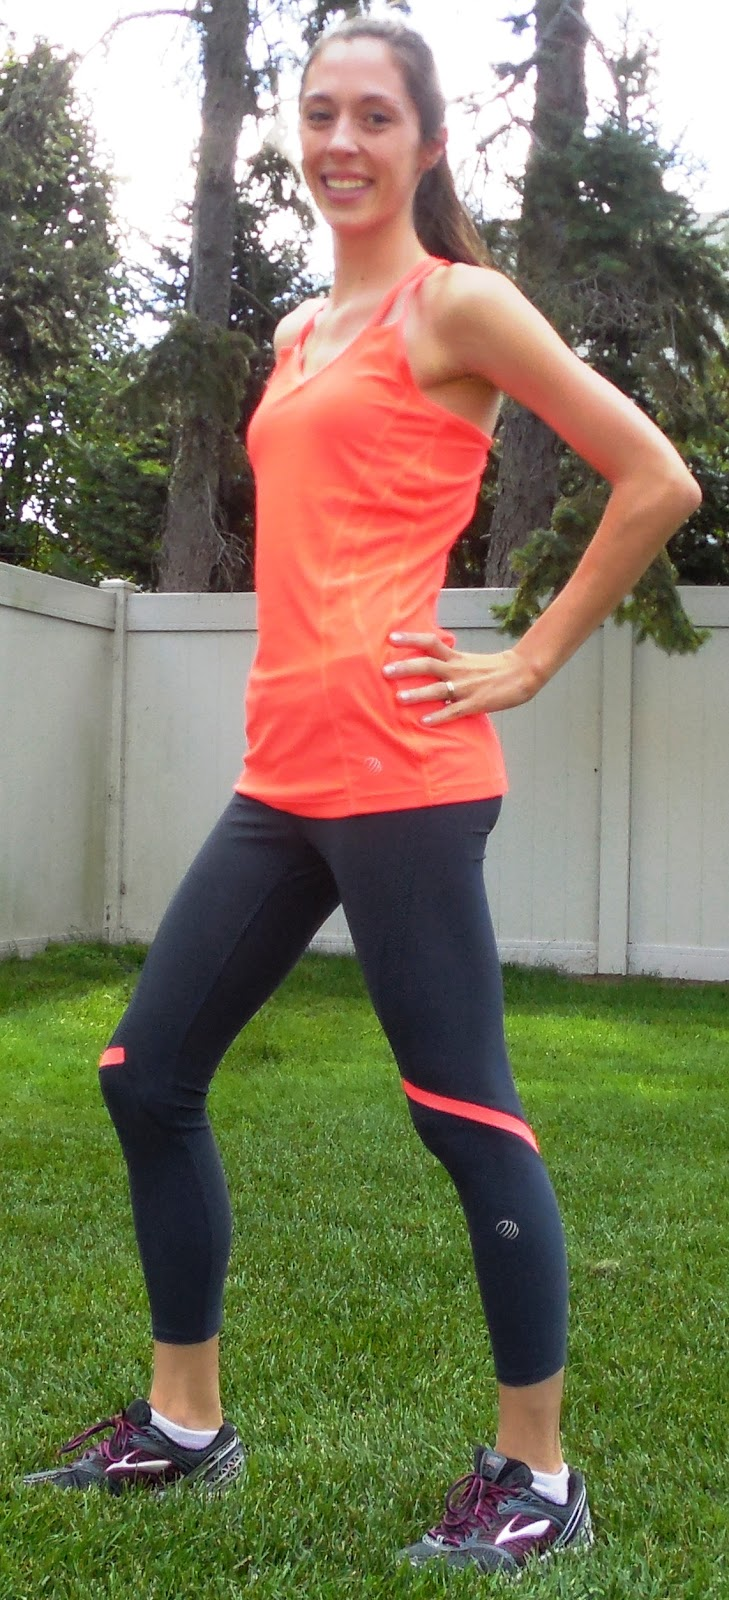 Mpg Is A Brand Of Quality Workout Clothing I Was Lucky To Be Able Review An Outfit From Them Try And Blog About Sent The Obelisk Jacket